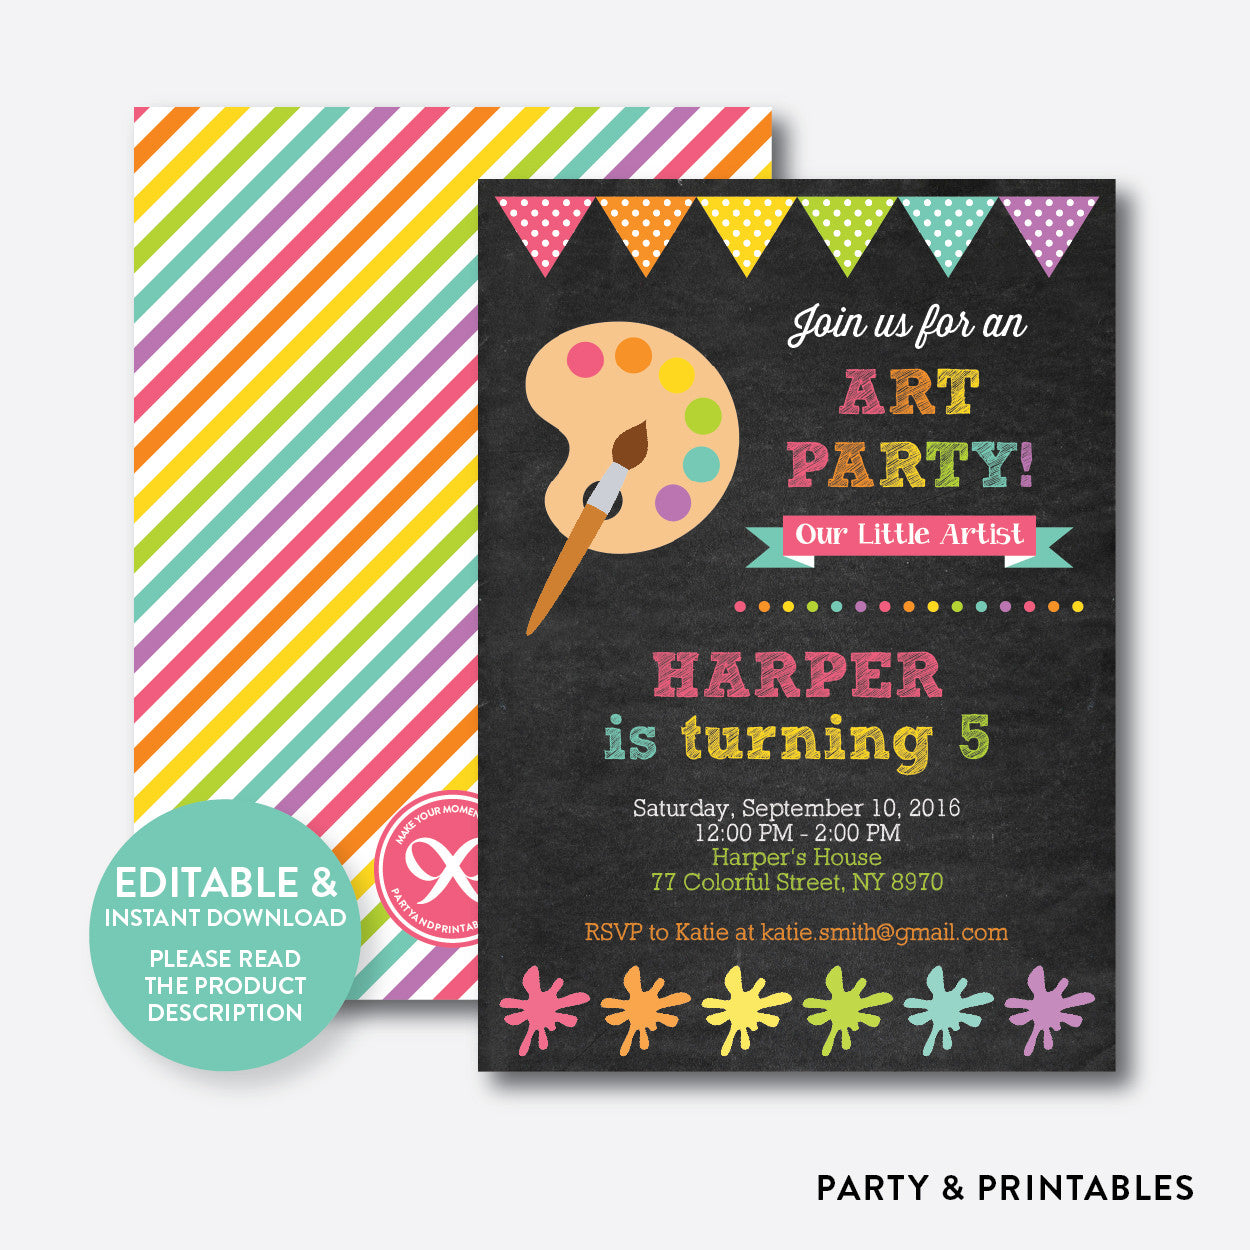 Art Party Pink Chalkboard Kids Birthday Invitation / Editable / Instant Download (CKB.88), invitation - Party and Printables